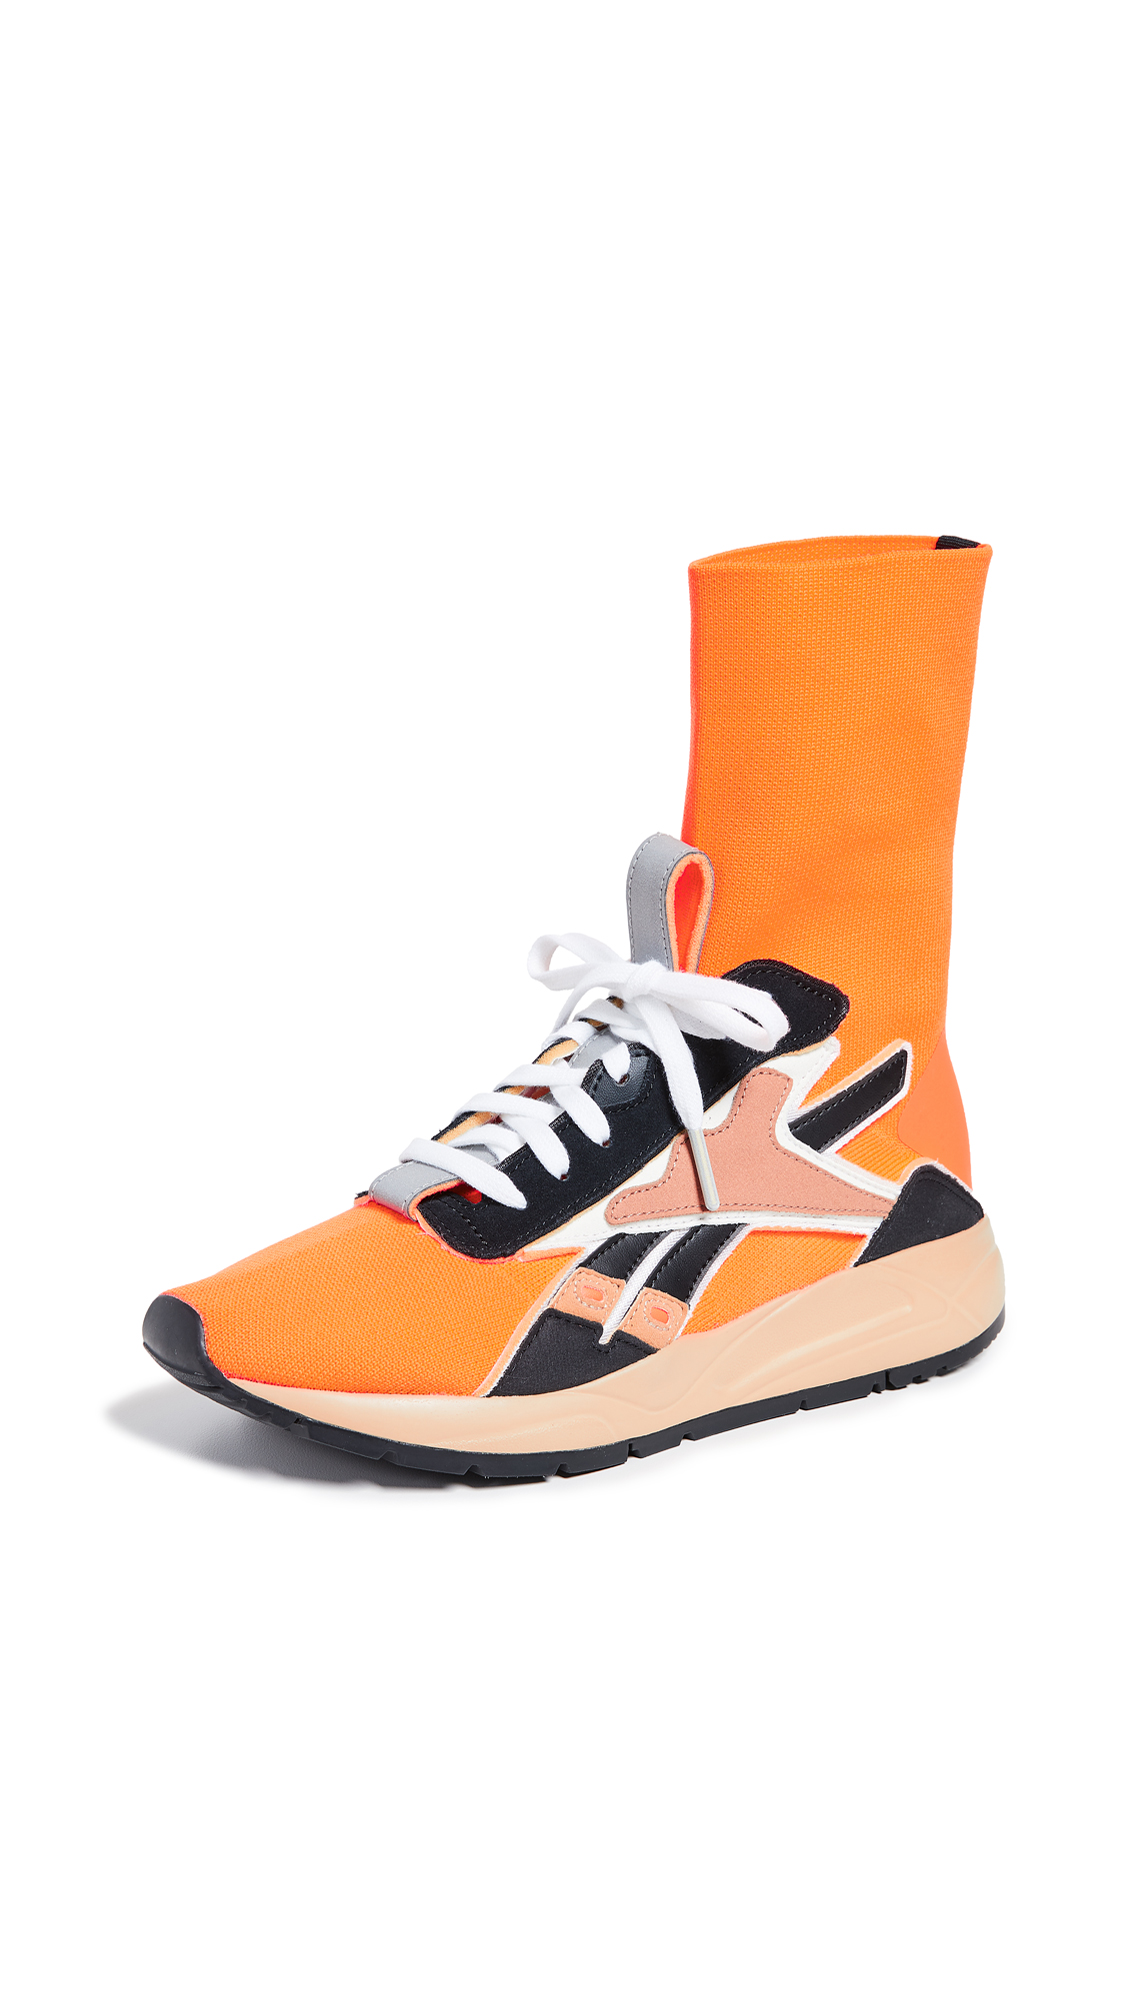 Reebok x Victoria Beckham VB Bolton Sock Sneakers - Solar Orange/Soft Camel/Black